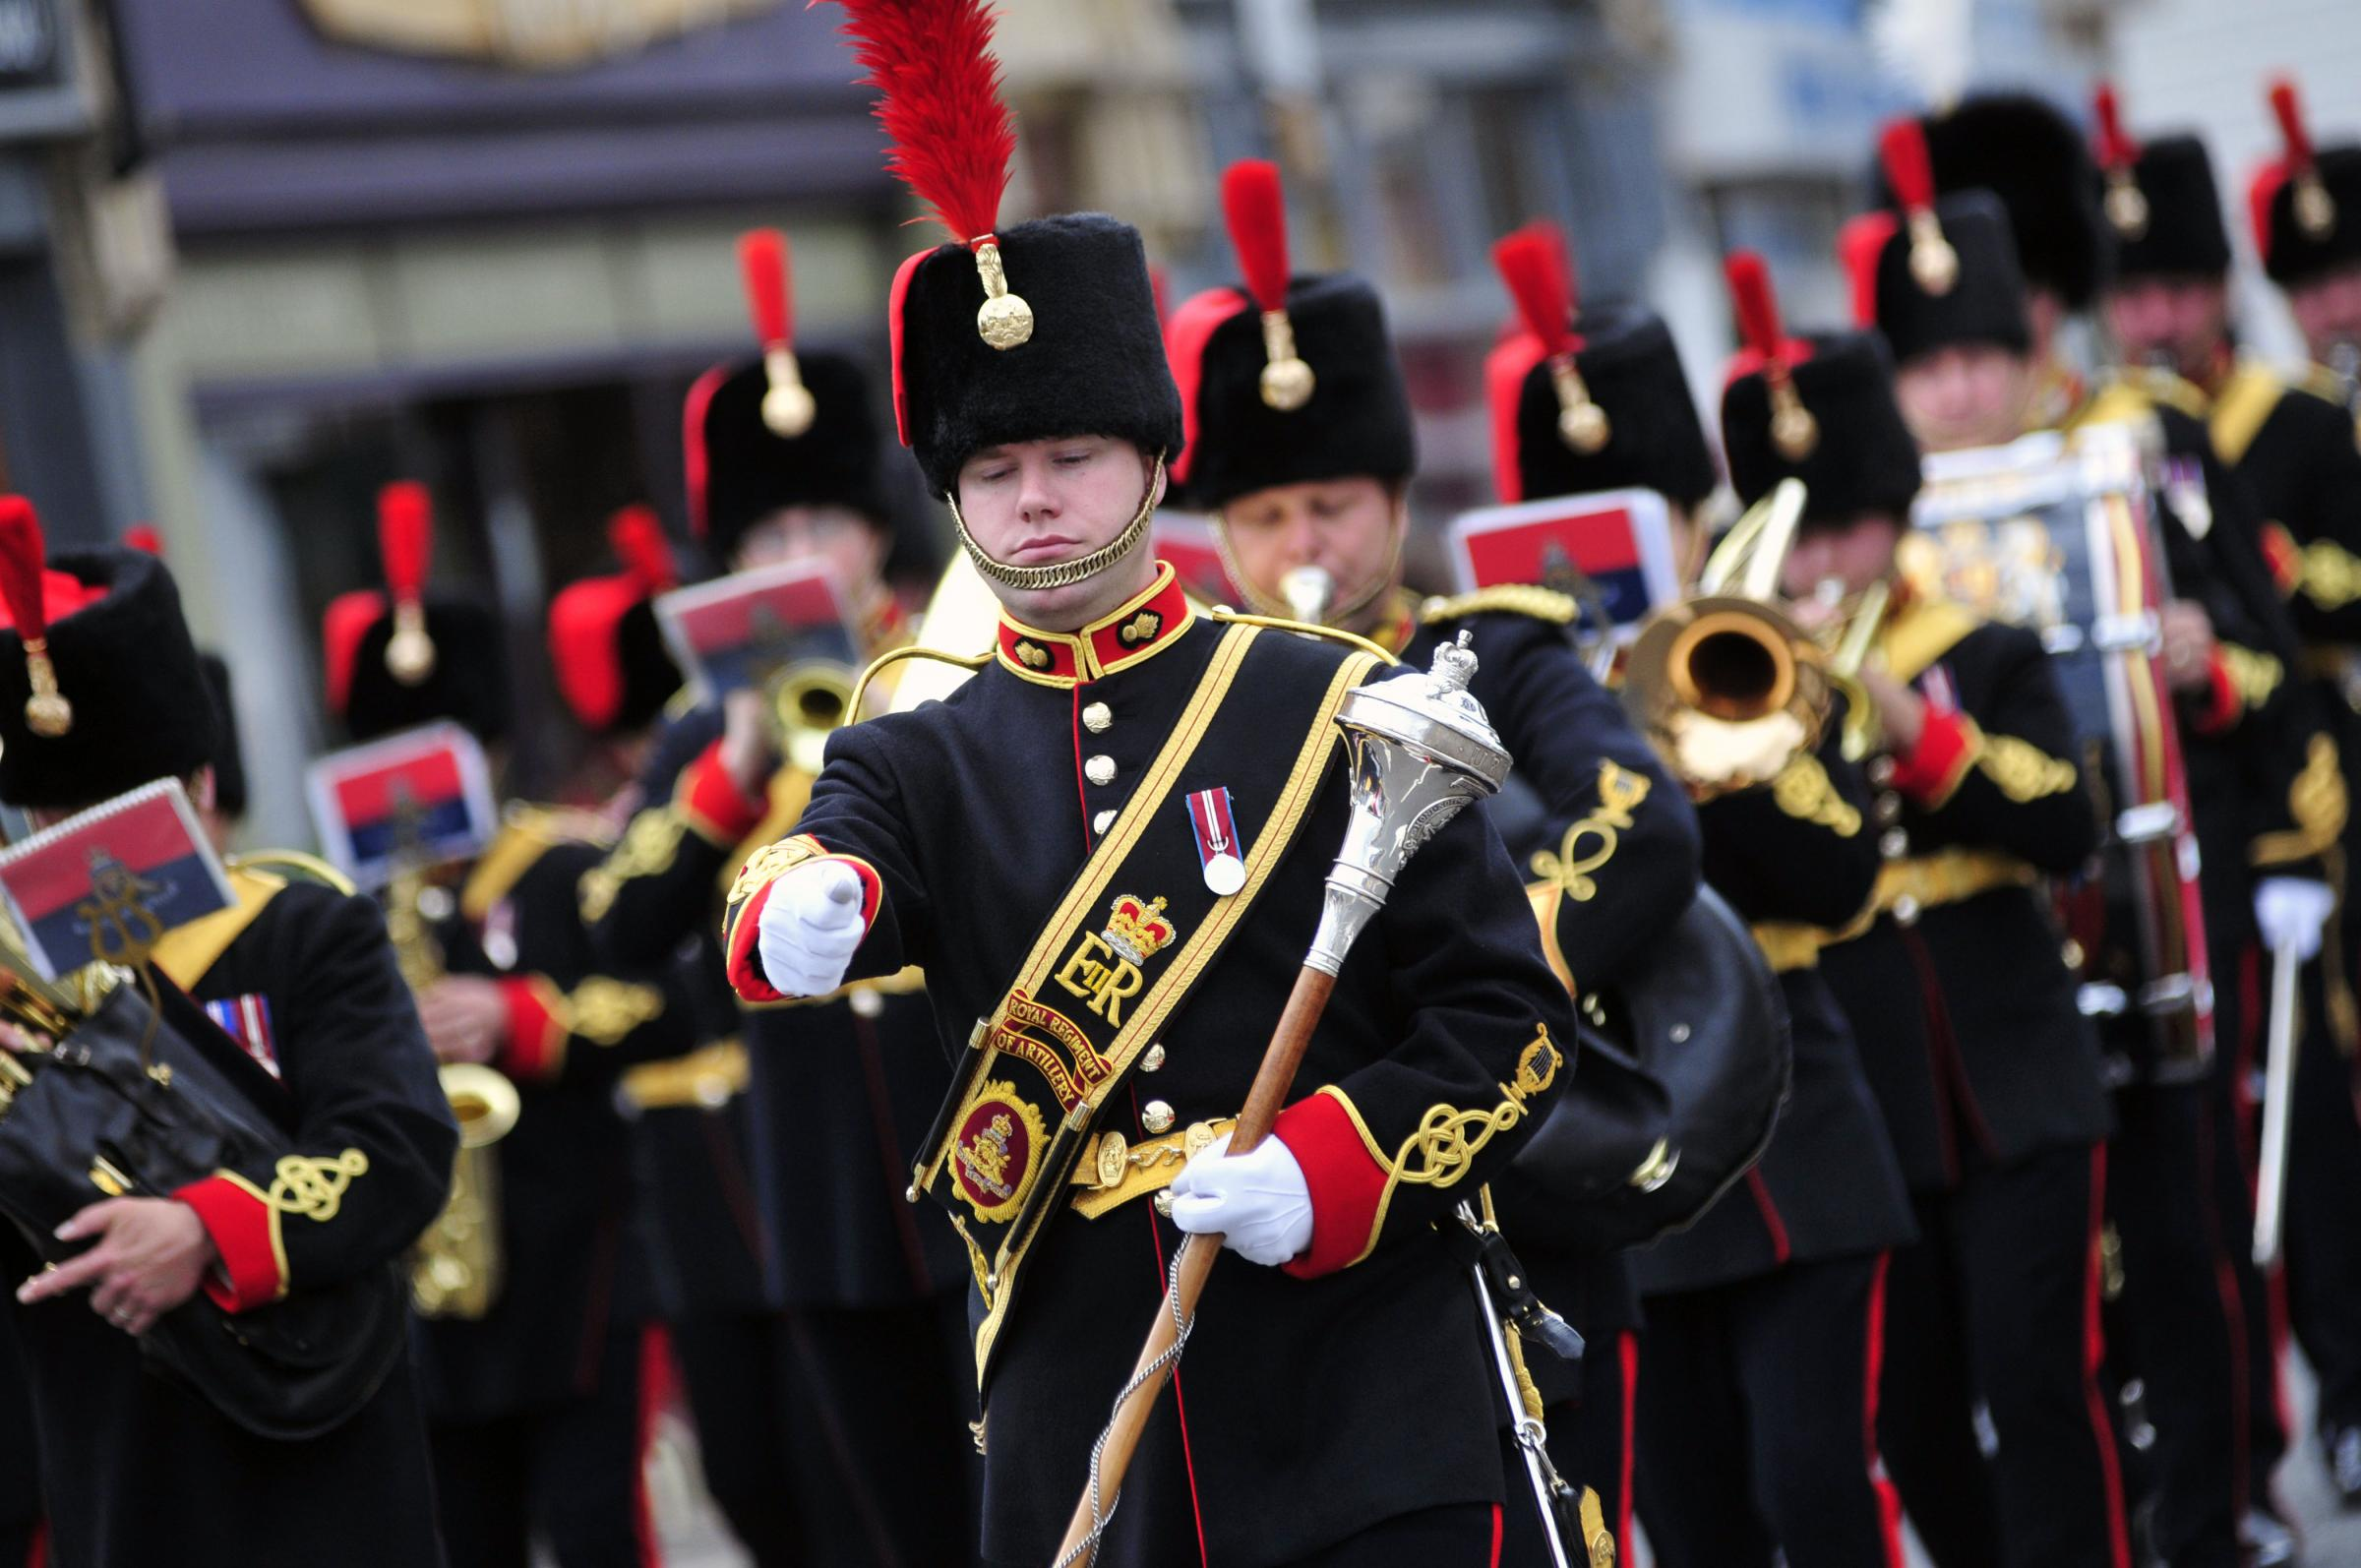 Band and soldiers march through Epsom in 2012 to mark its 75th anniversary